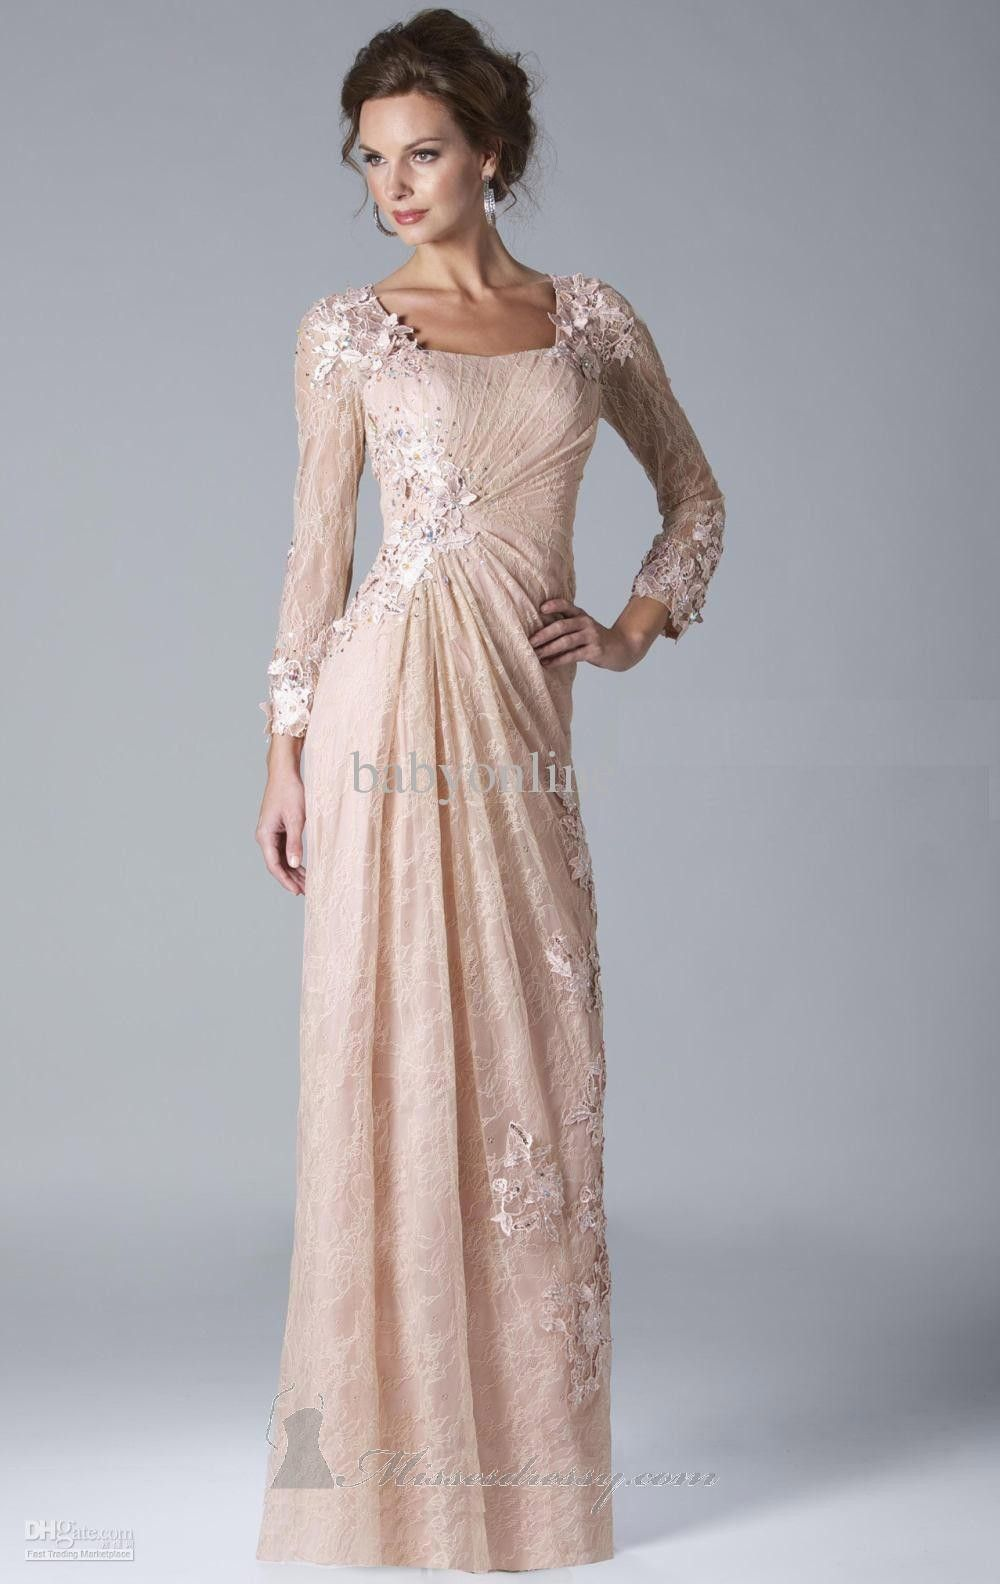 long-evening-dresses-for-women-long-sleeve-evening-dresses-dress ...